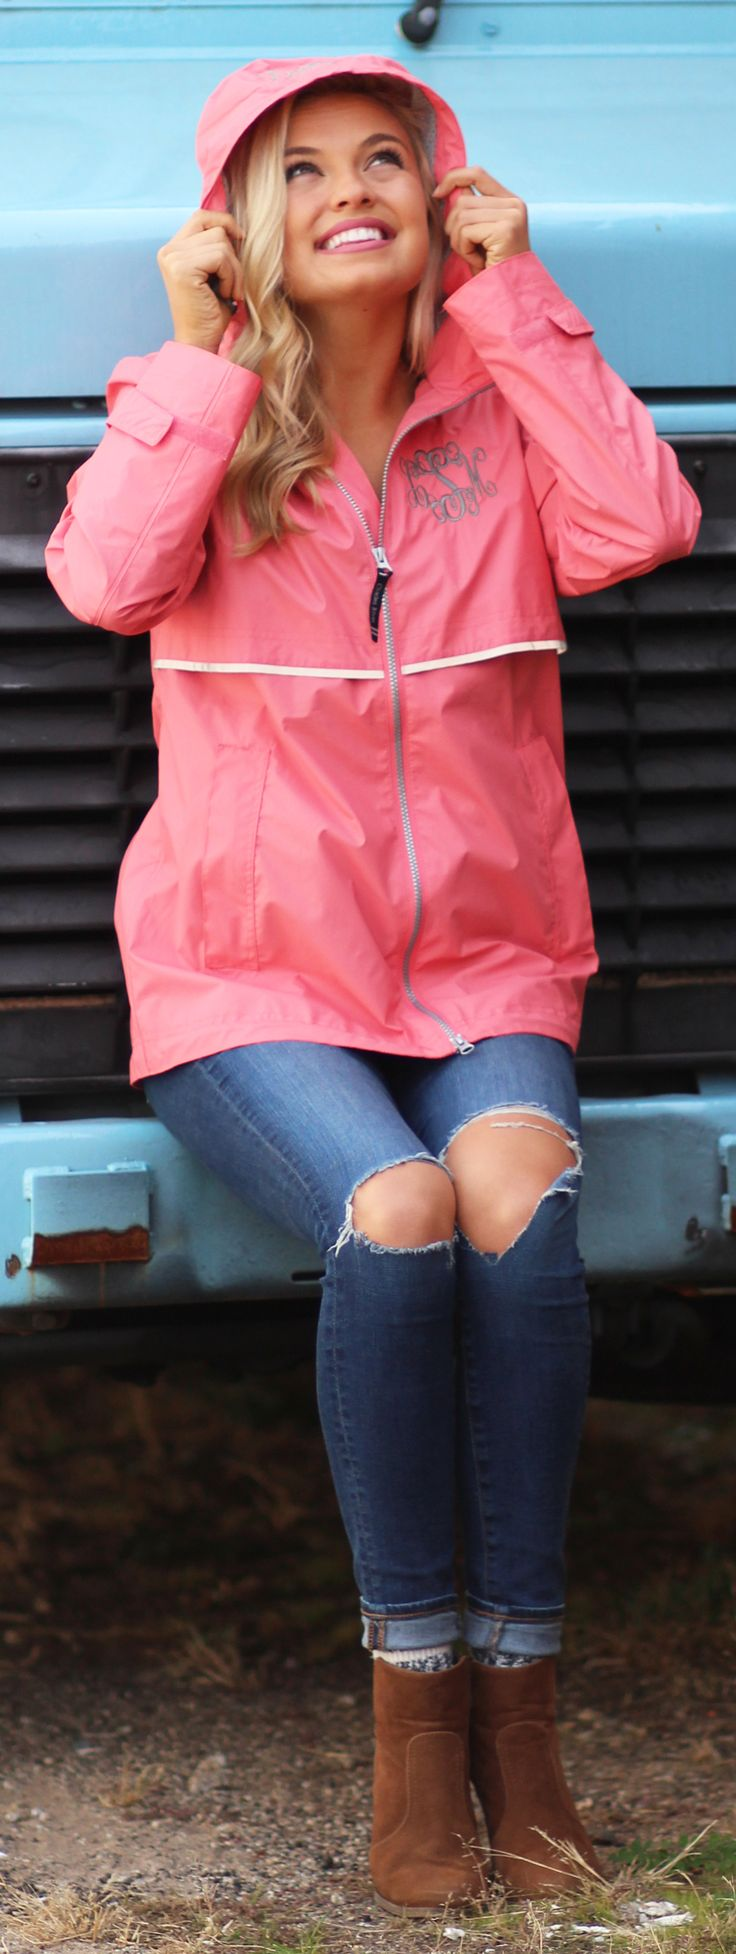 Prepare for those Spring showers & get yourself a Monogrammed New England Rain Jacket!